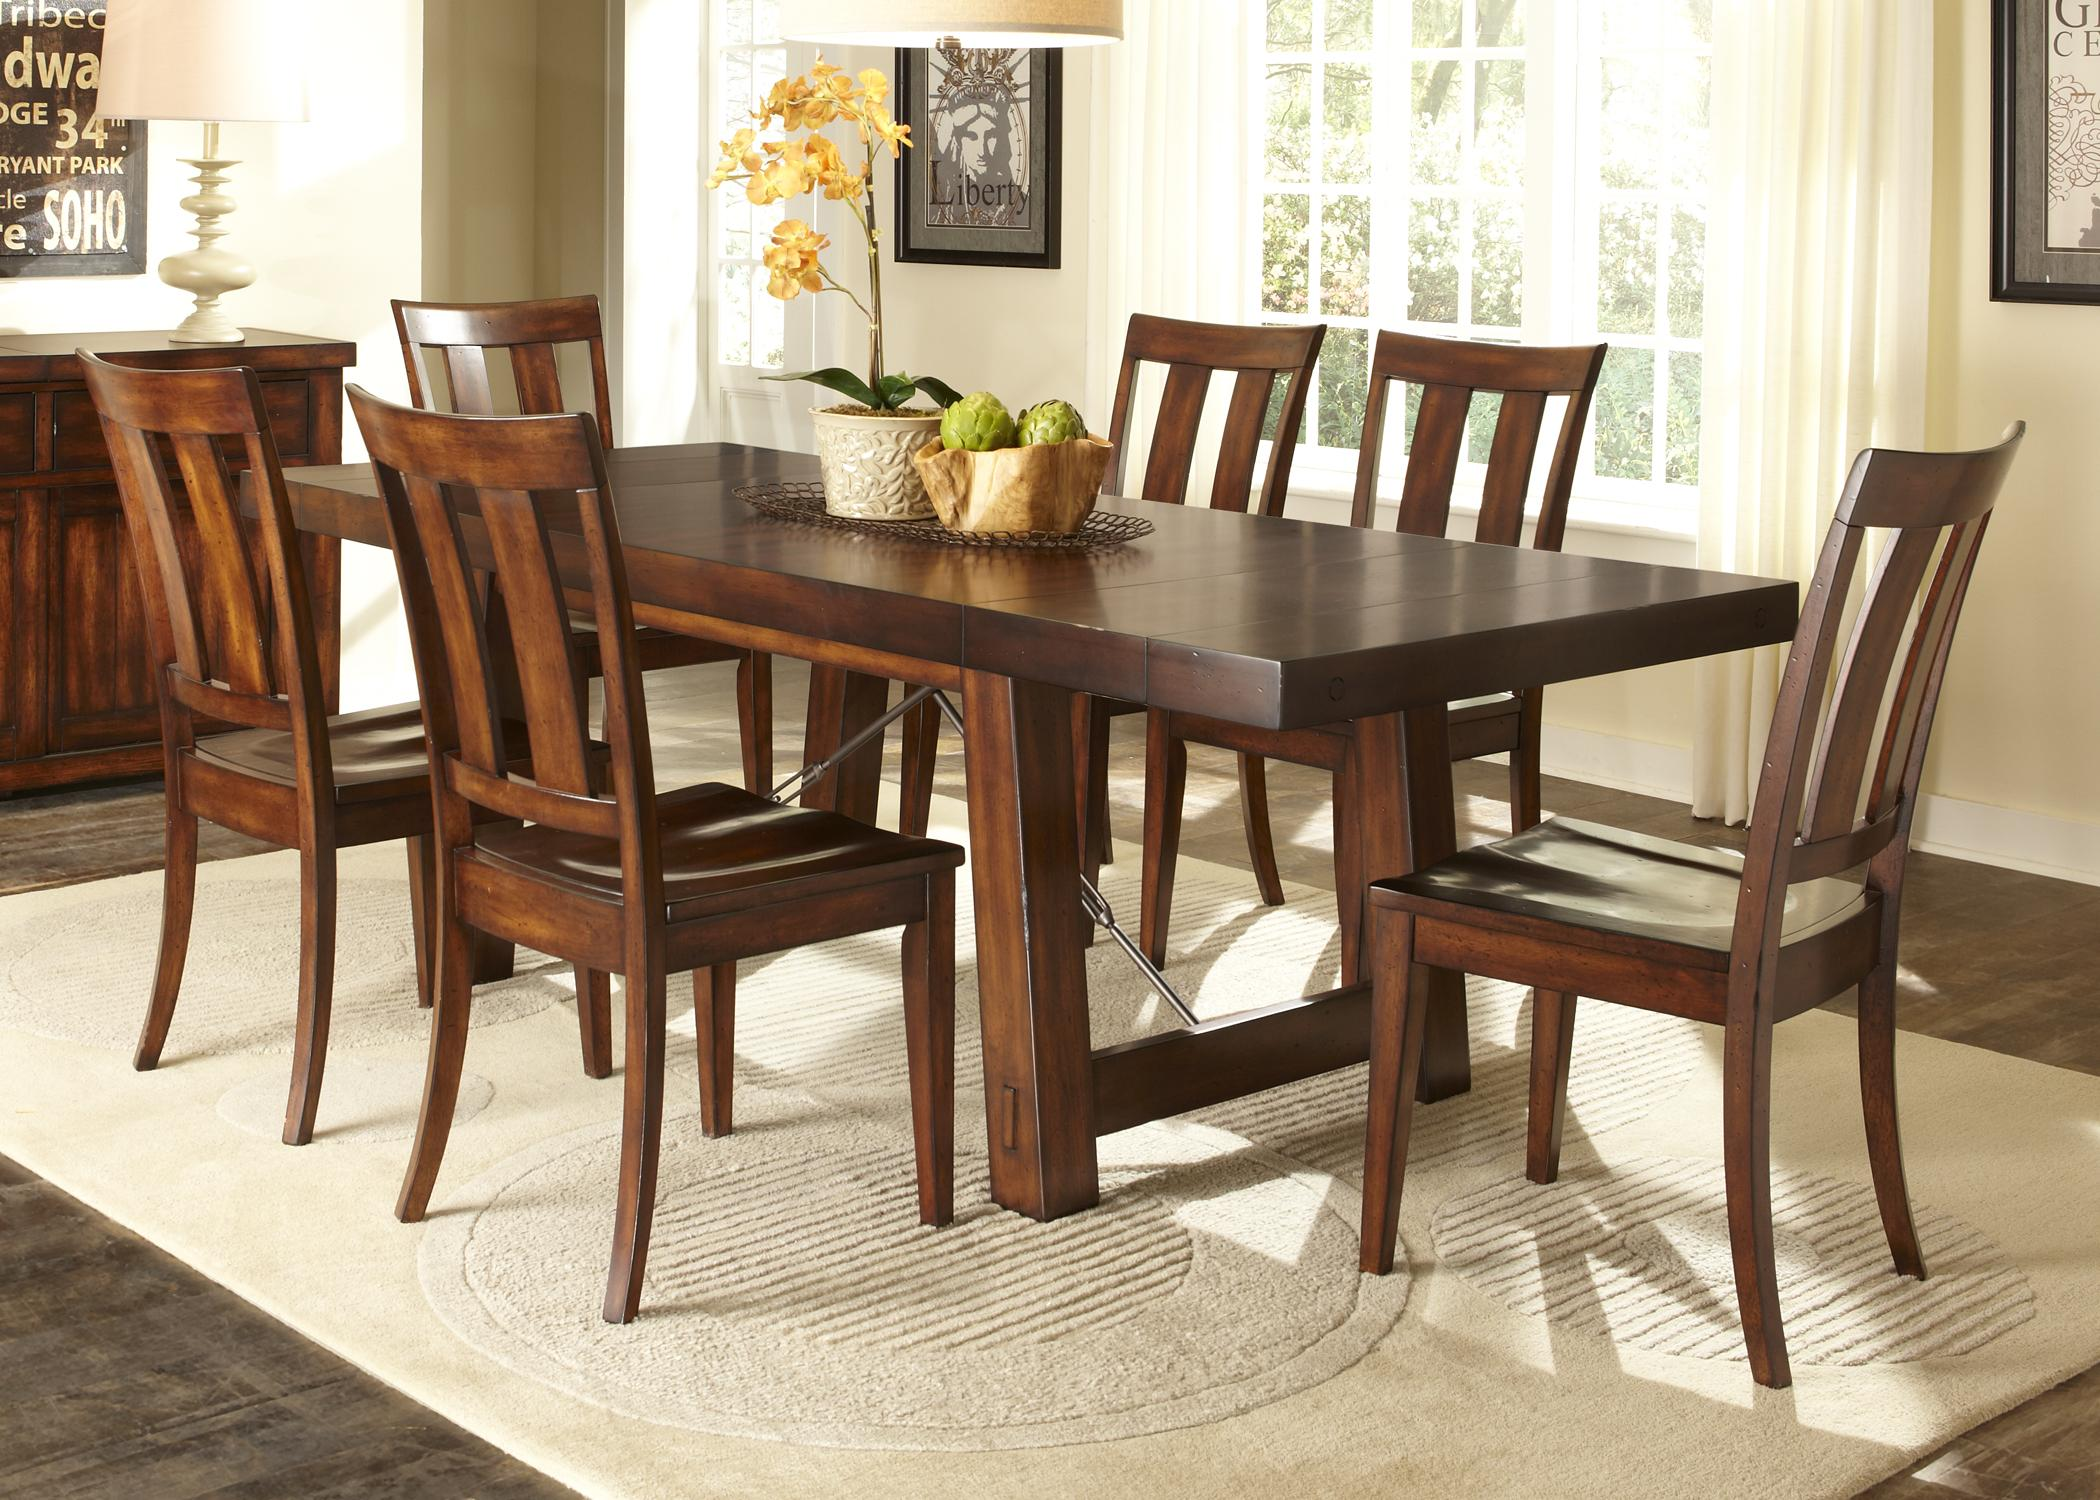 Tahoe Trestle Table with Iron Support Stretcher and Turnbuckle ...